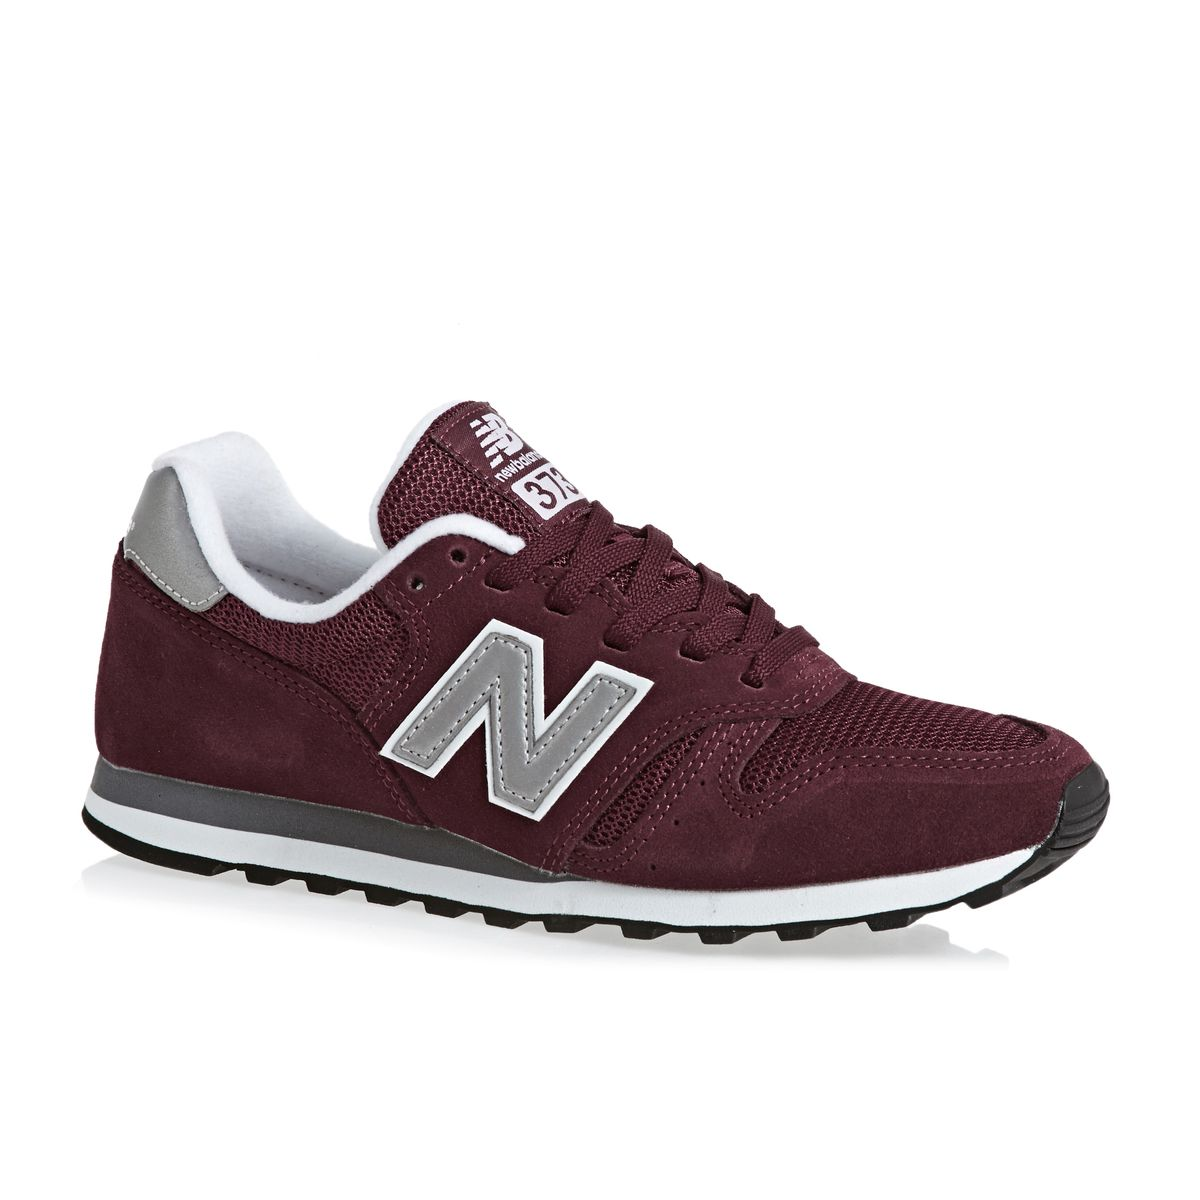 New Balance Ml373 Shoes Free Delivery options on All Orders from Surfdome UK